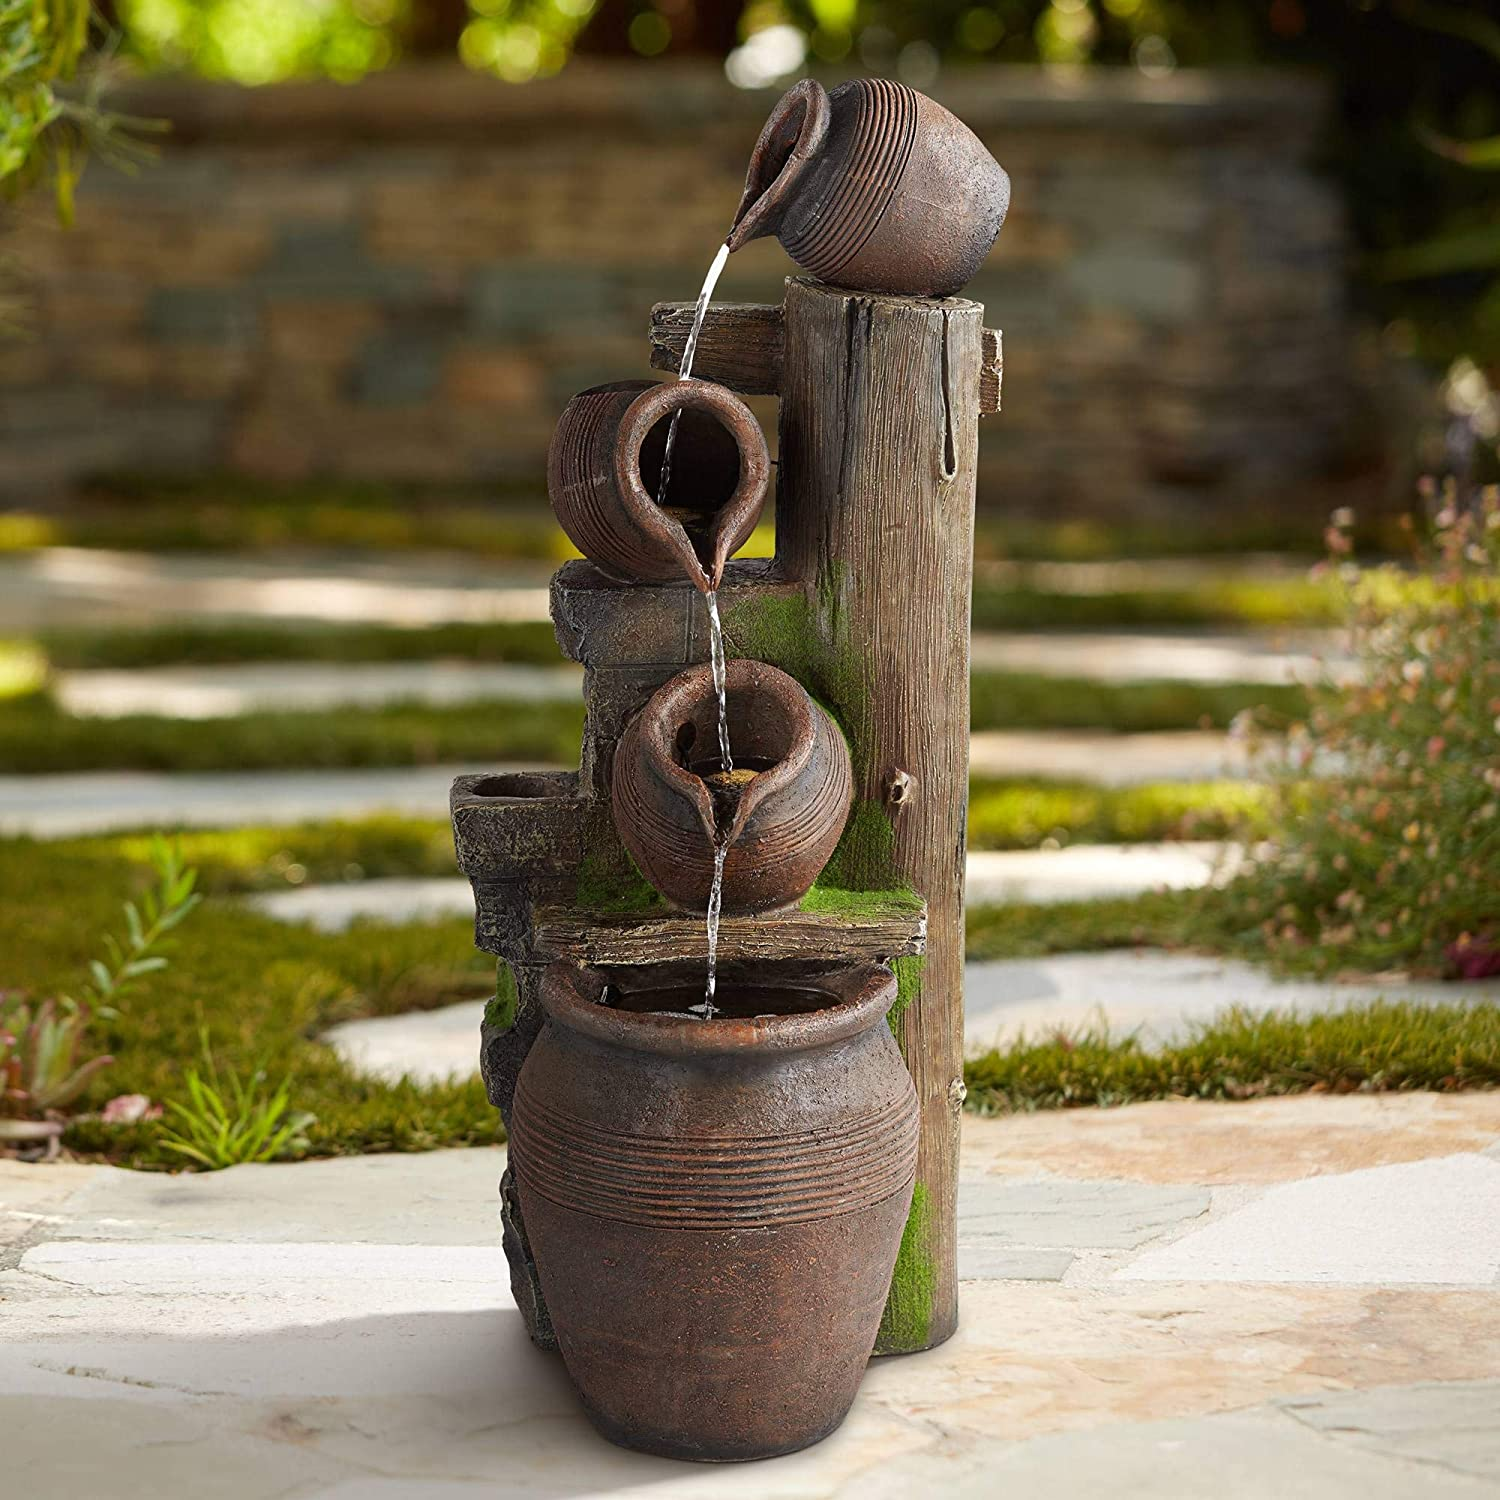 John Timberland Four Pot Rustic Outdoor Floor Water Fountain with Light LED 39 1/4